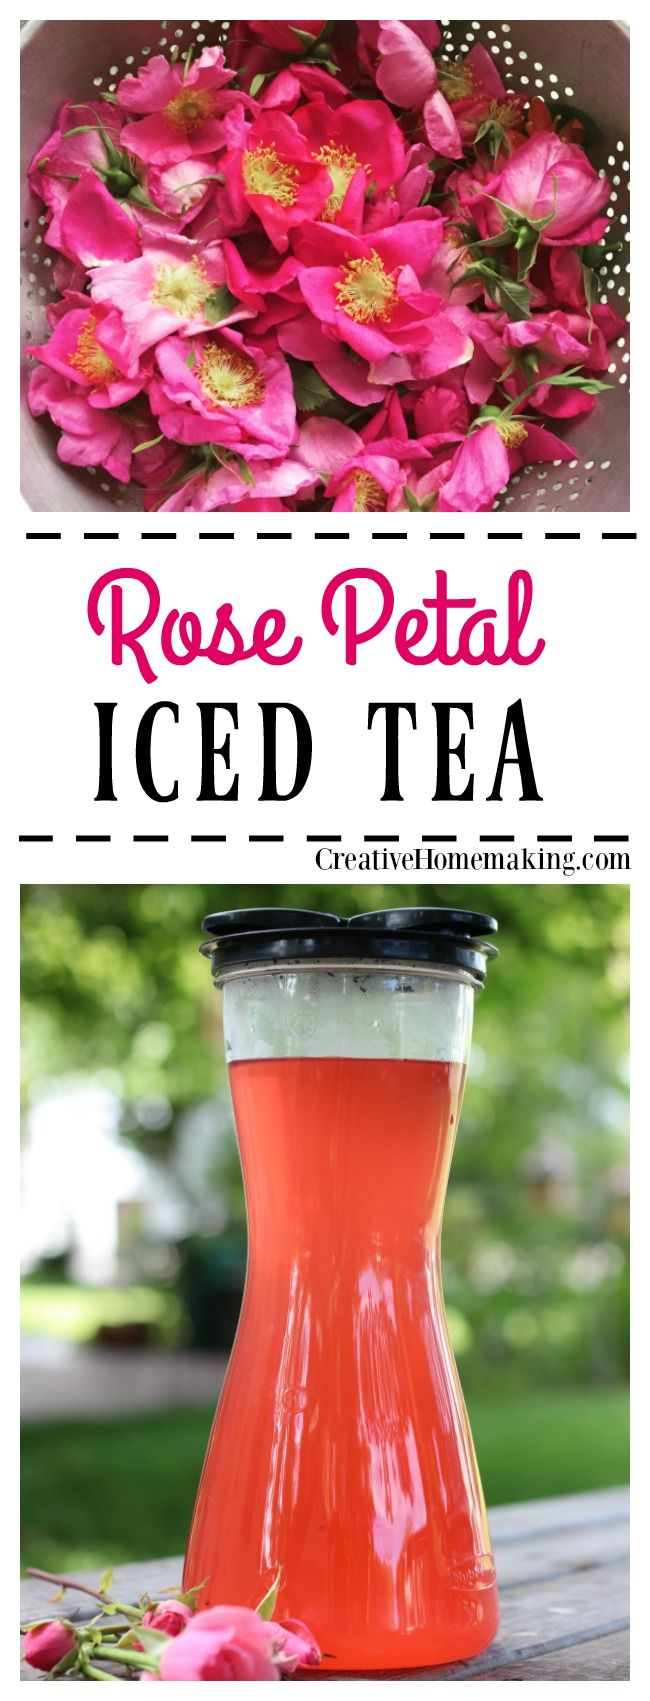 How to make wonderfully refreshing homemade rose petal iced tea from fresh rose petals.